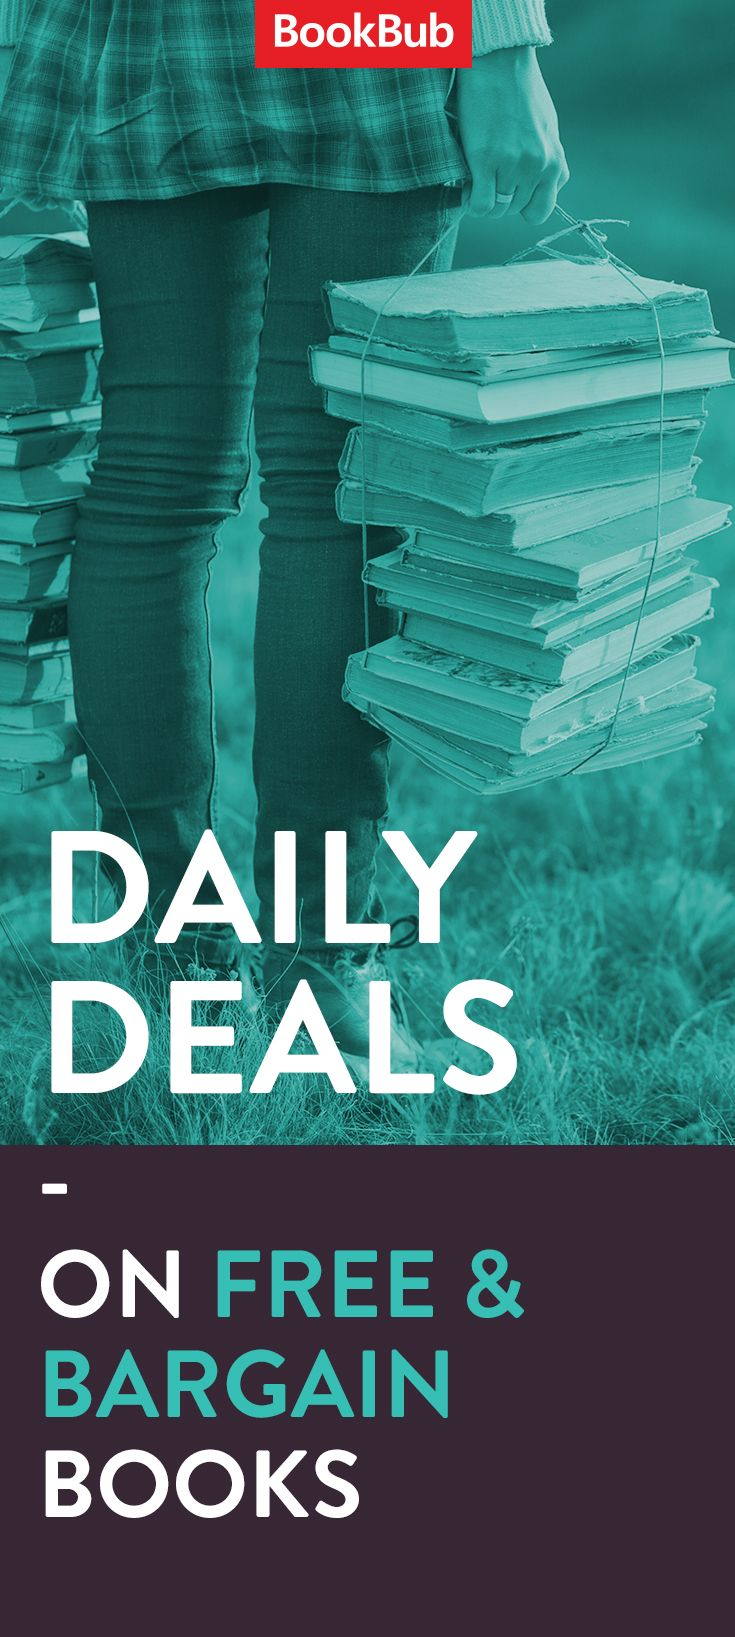 Bookbub Emails You Daily Deals On Thousands Of Free And Discounted Ebooks,  Handpicked Based On